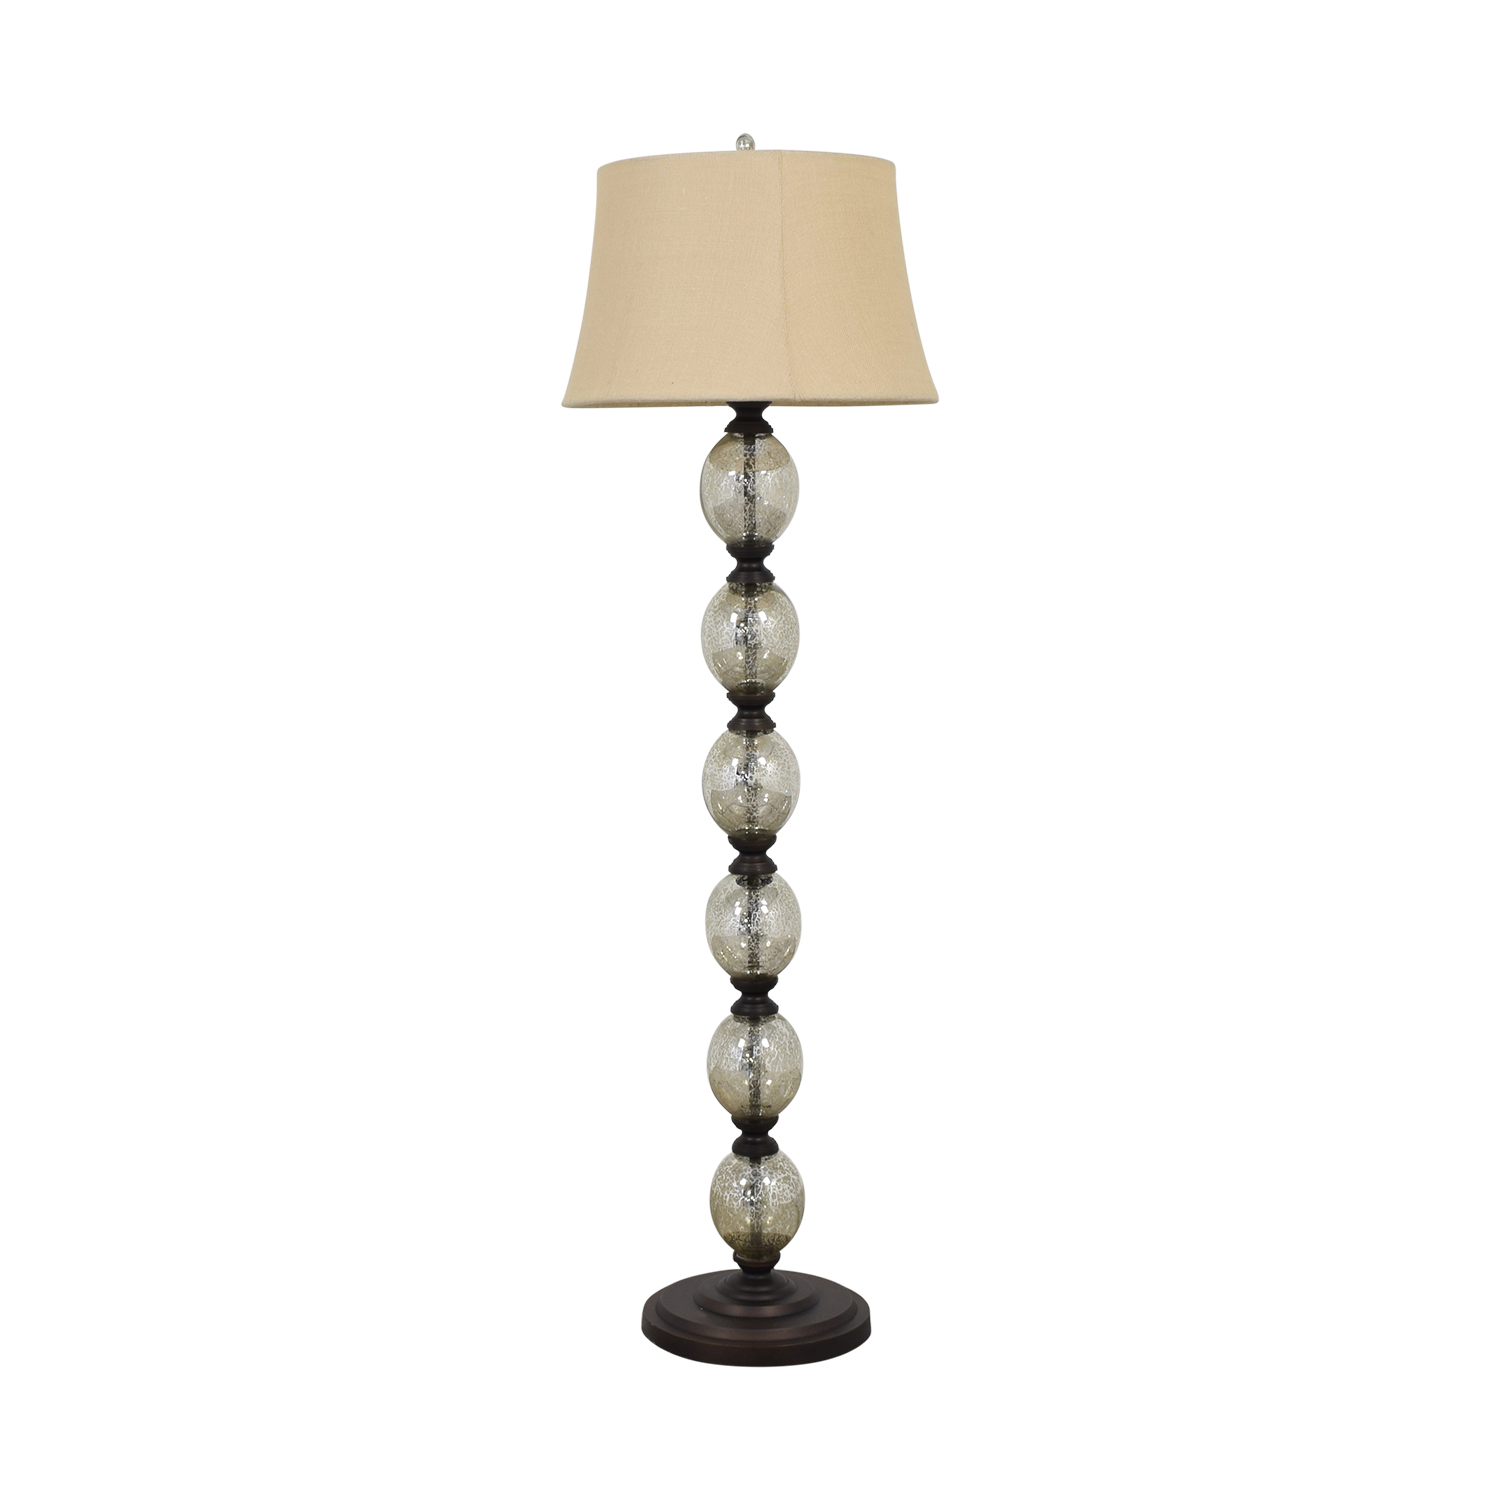 buy Pottery Barn Pottery Barn Stacked Mercury Glass Floor Lamp online